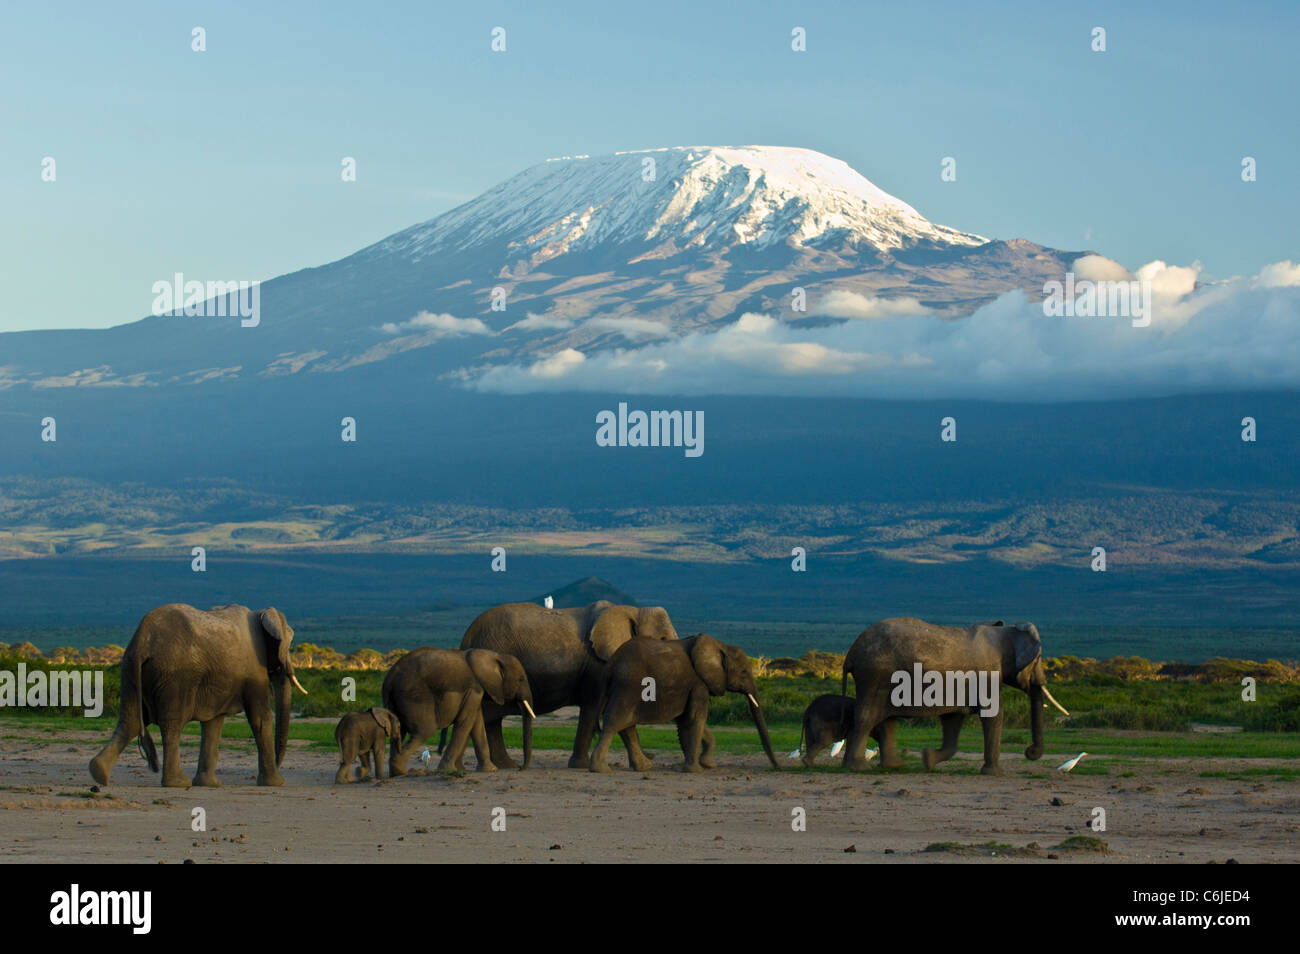 A herd of African elephants with the snow-capped Kibo peak of Mount Kilimanjaro in the background. - Stock Image